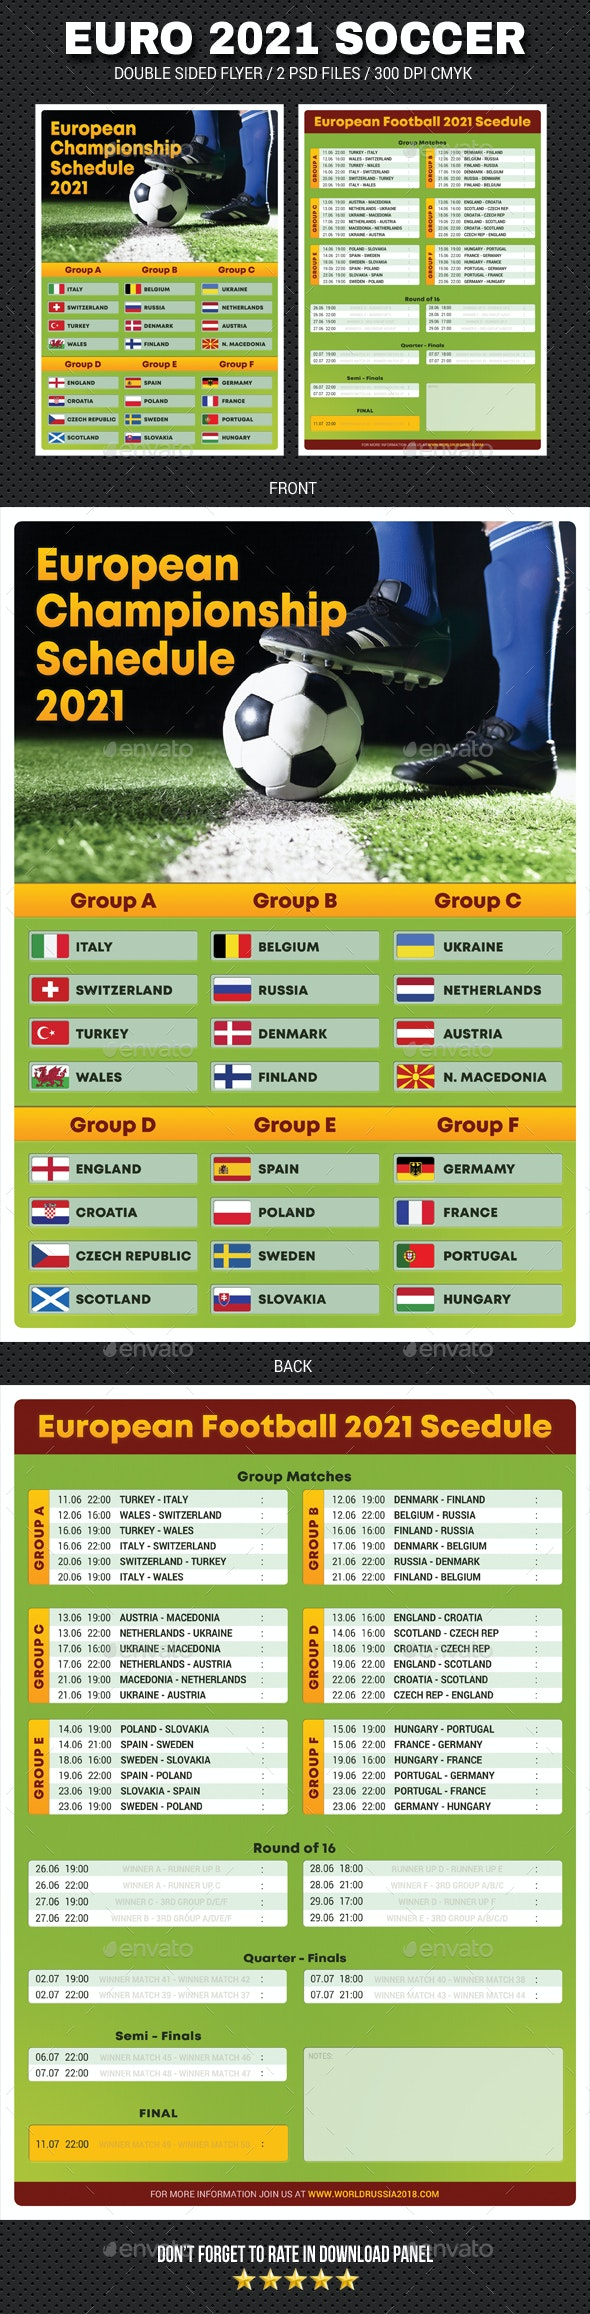 European Soccer Football Championship 2021 Schedule Flyer 2 - Sports Events